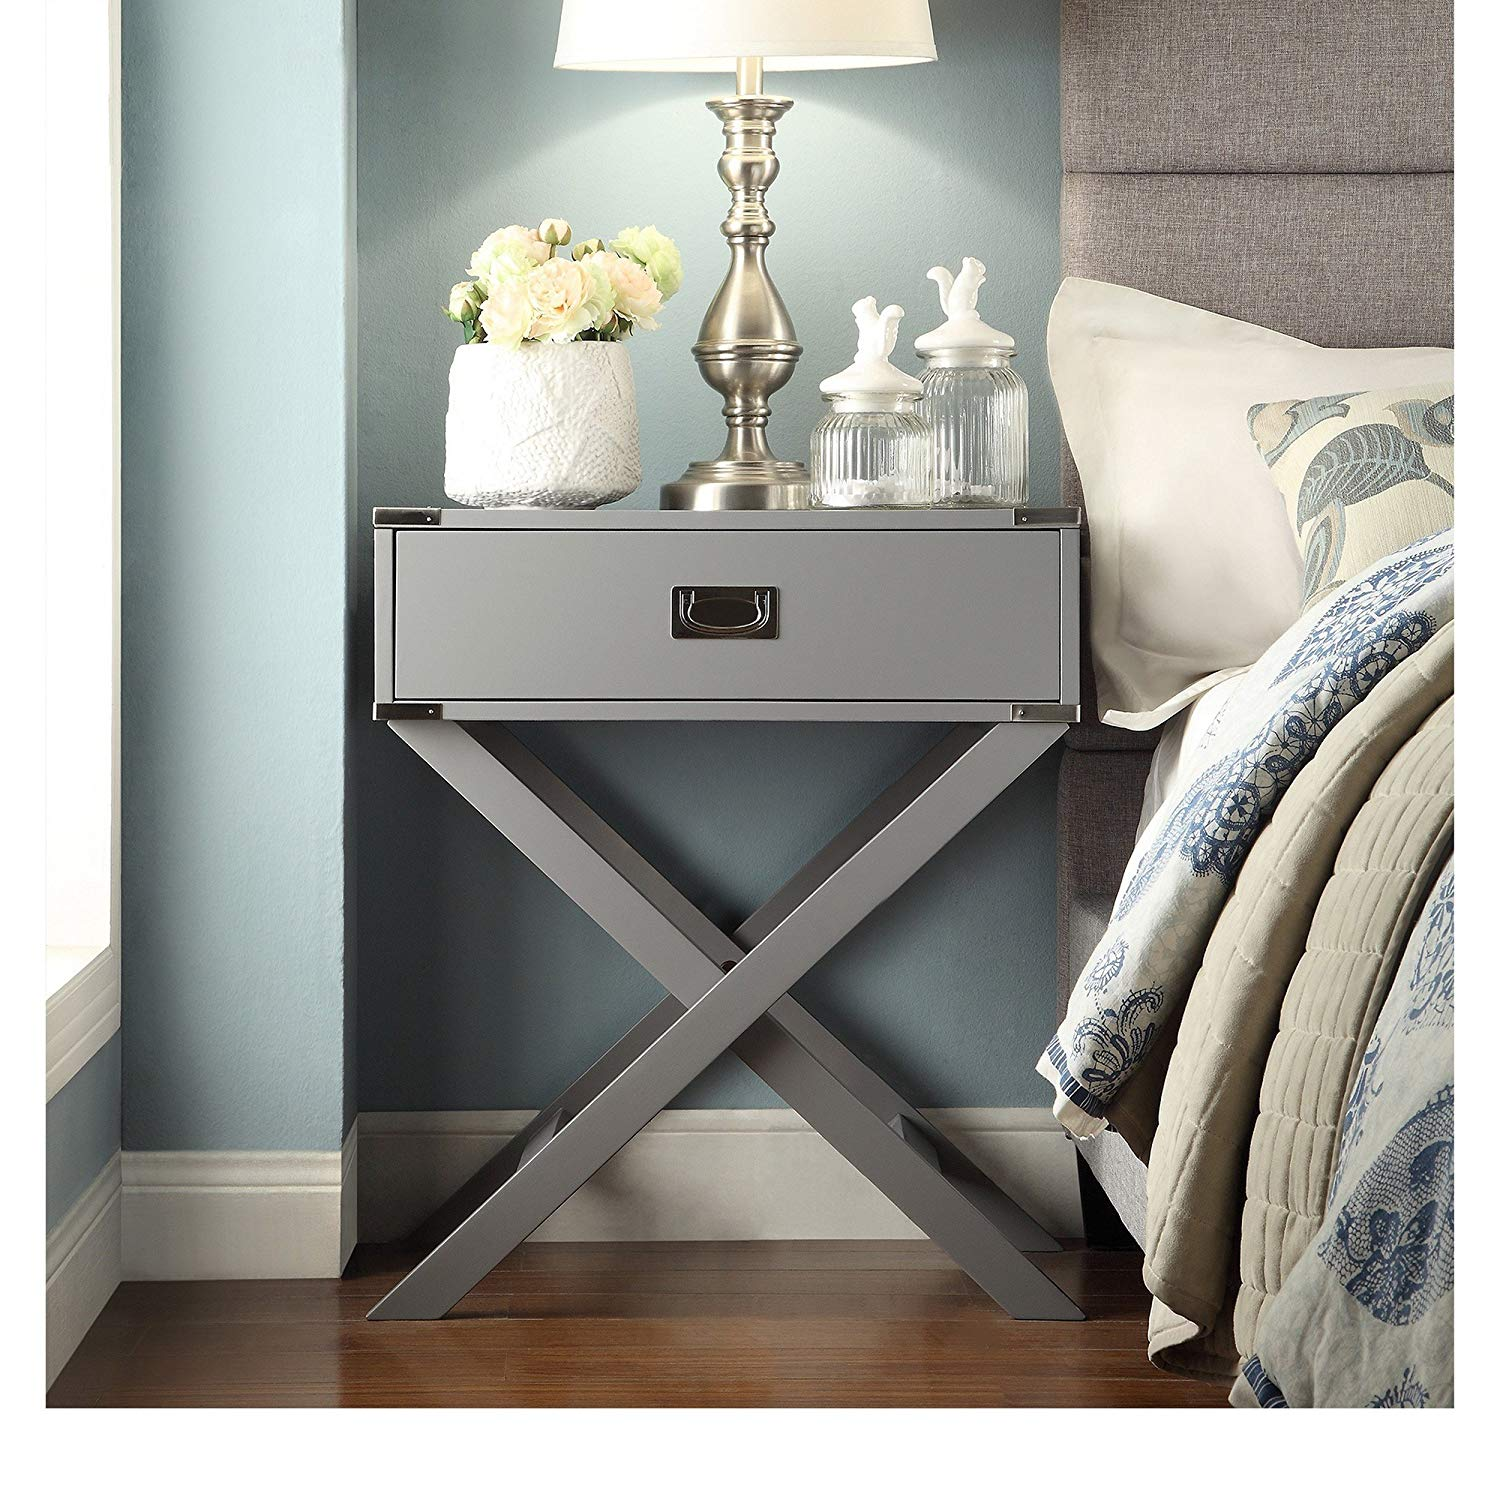 modhaus living modern wood accent base nightstand table campaign sofa rectangle shaped with storage drawer includes pen gray kitchen extra large coffee pottery barn display shadow